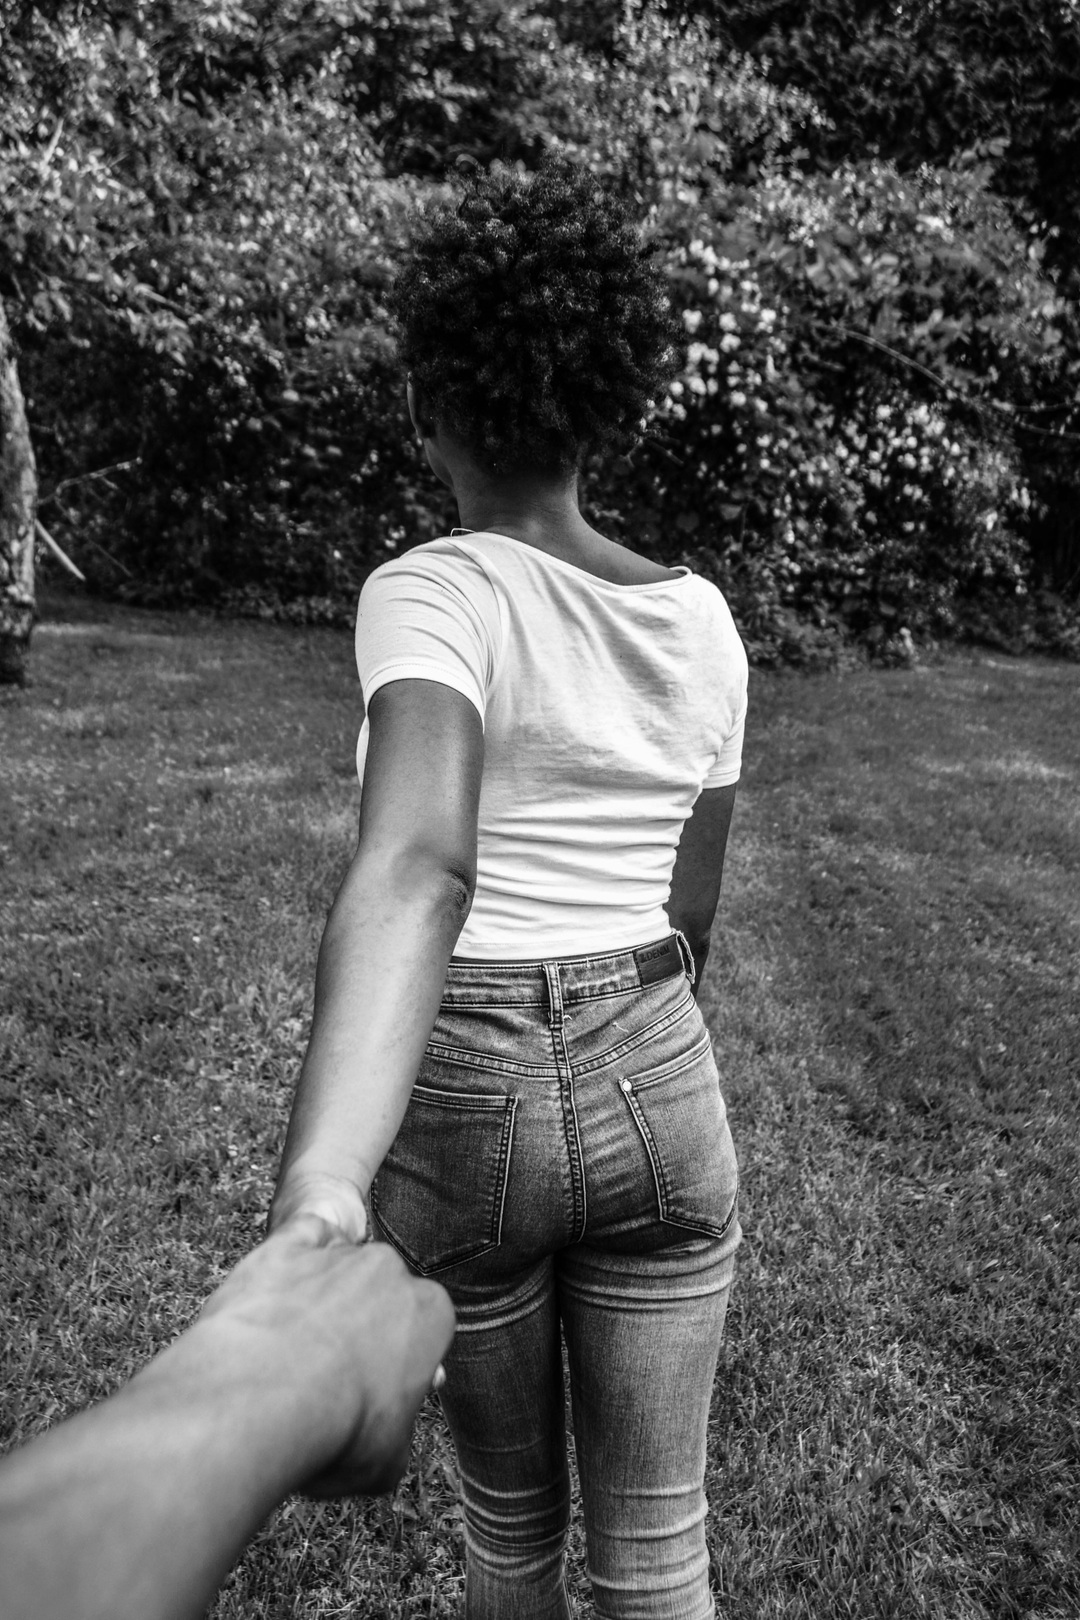 black woman leading her man by the hand